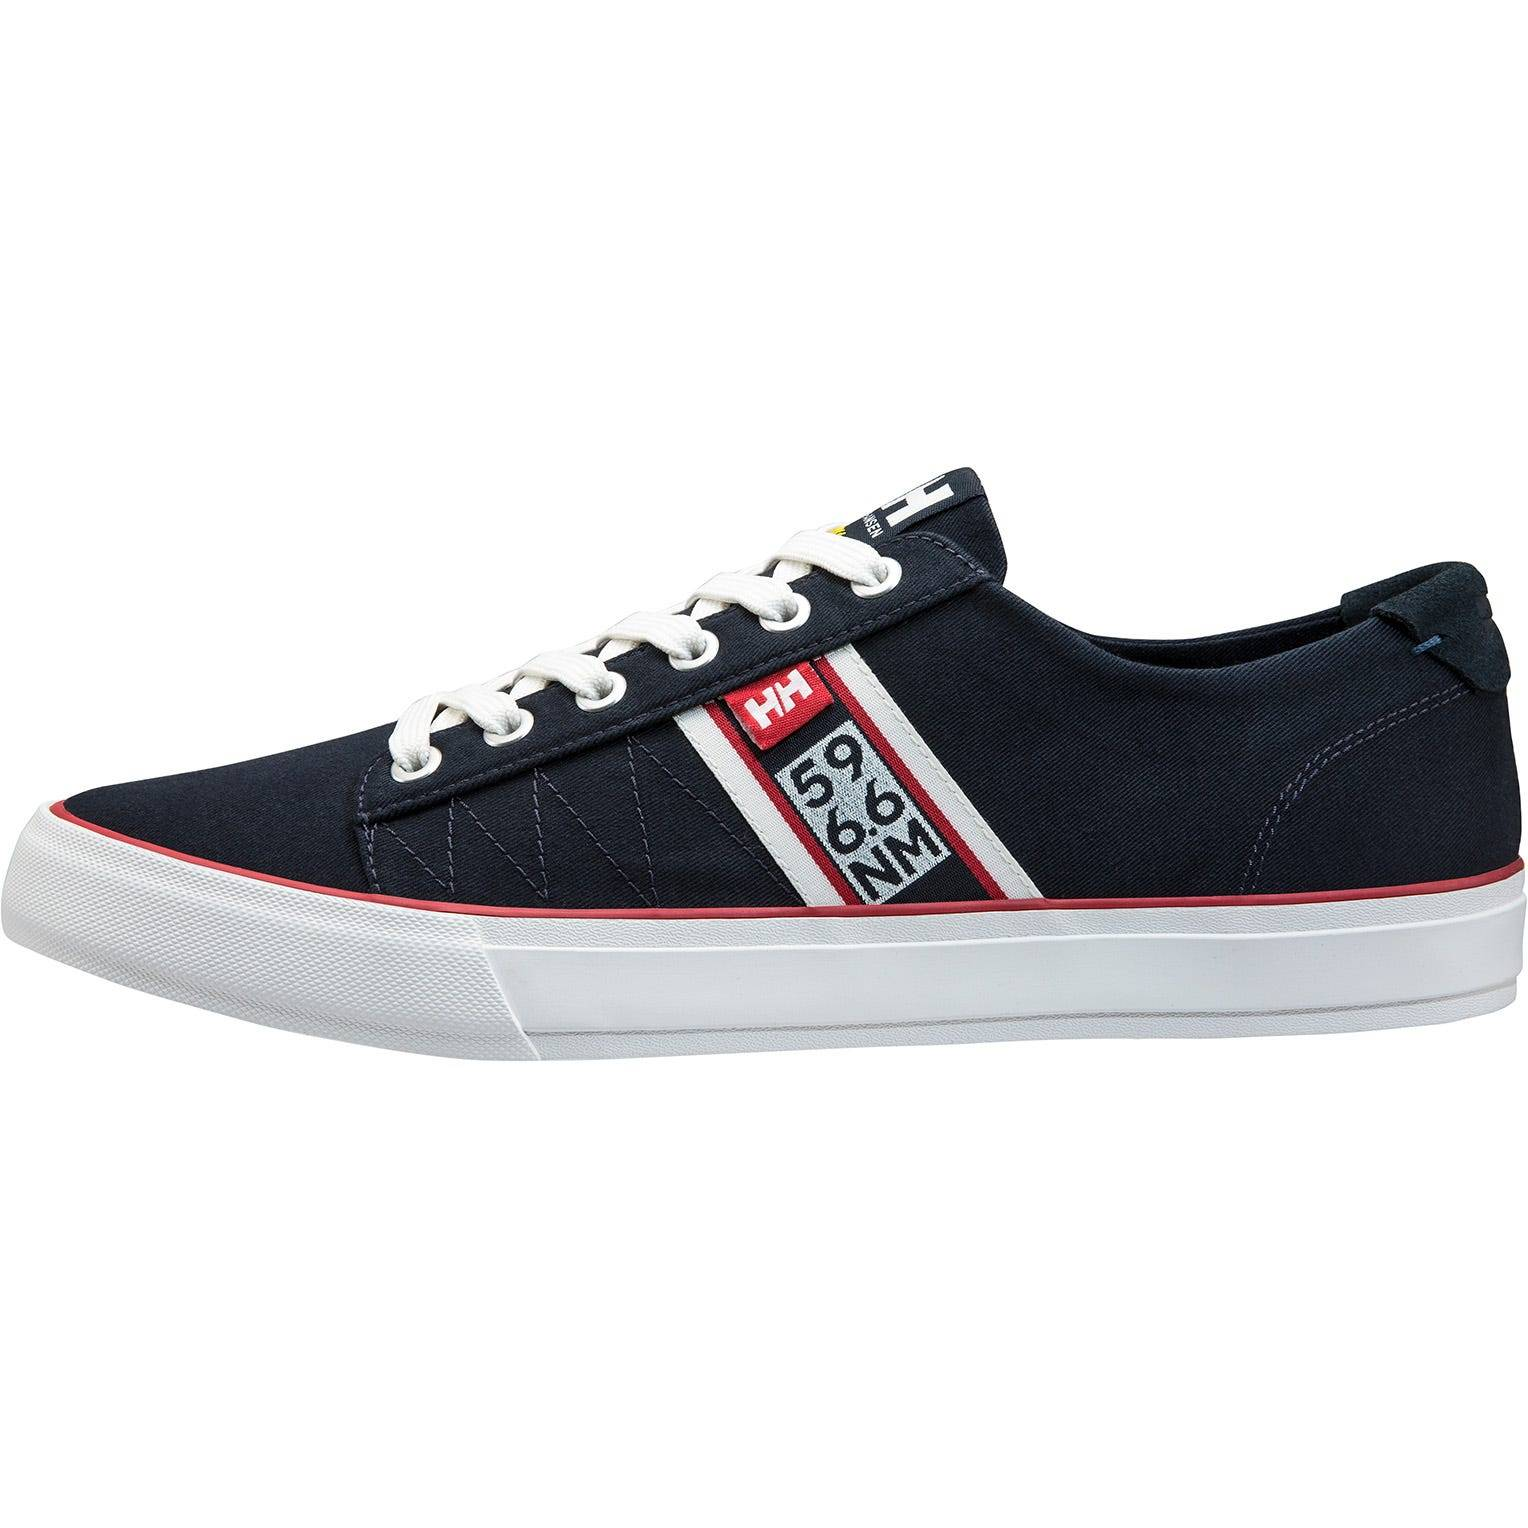 Helly Hansen Salt Flag F1 Mens :casual Shoe Navy 40.5/7.5